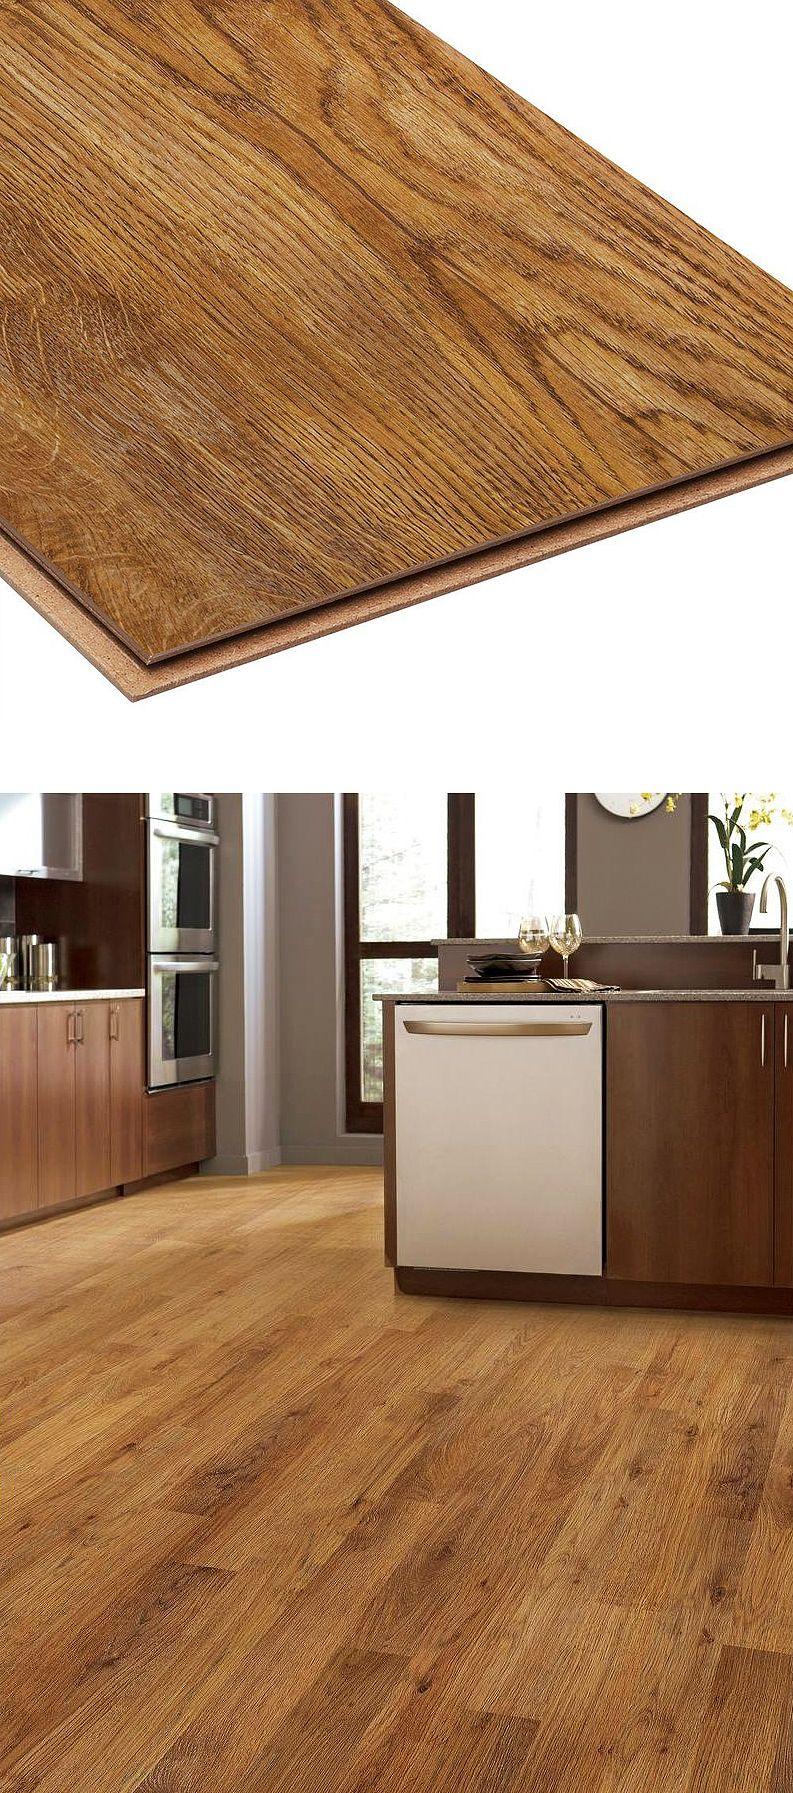 Laminate flooring is a great way to give your kitchen the